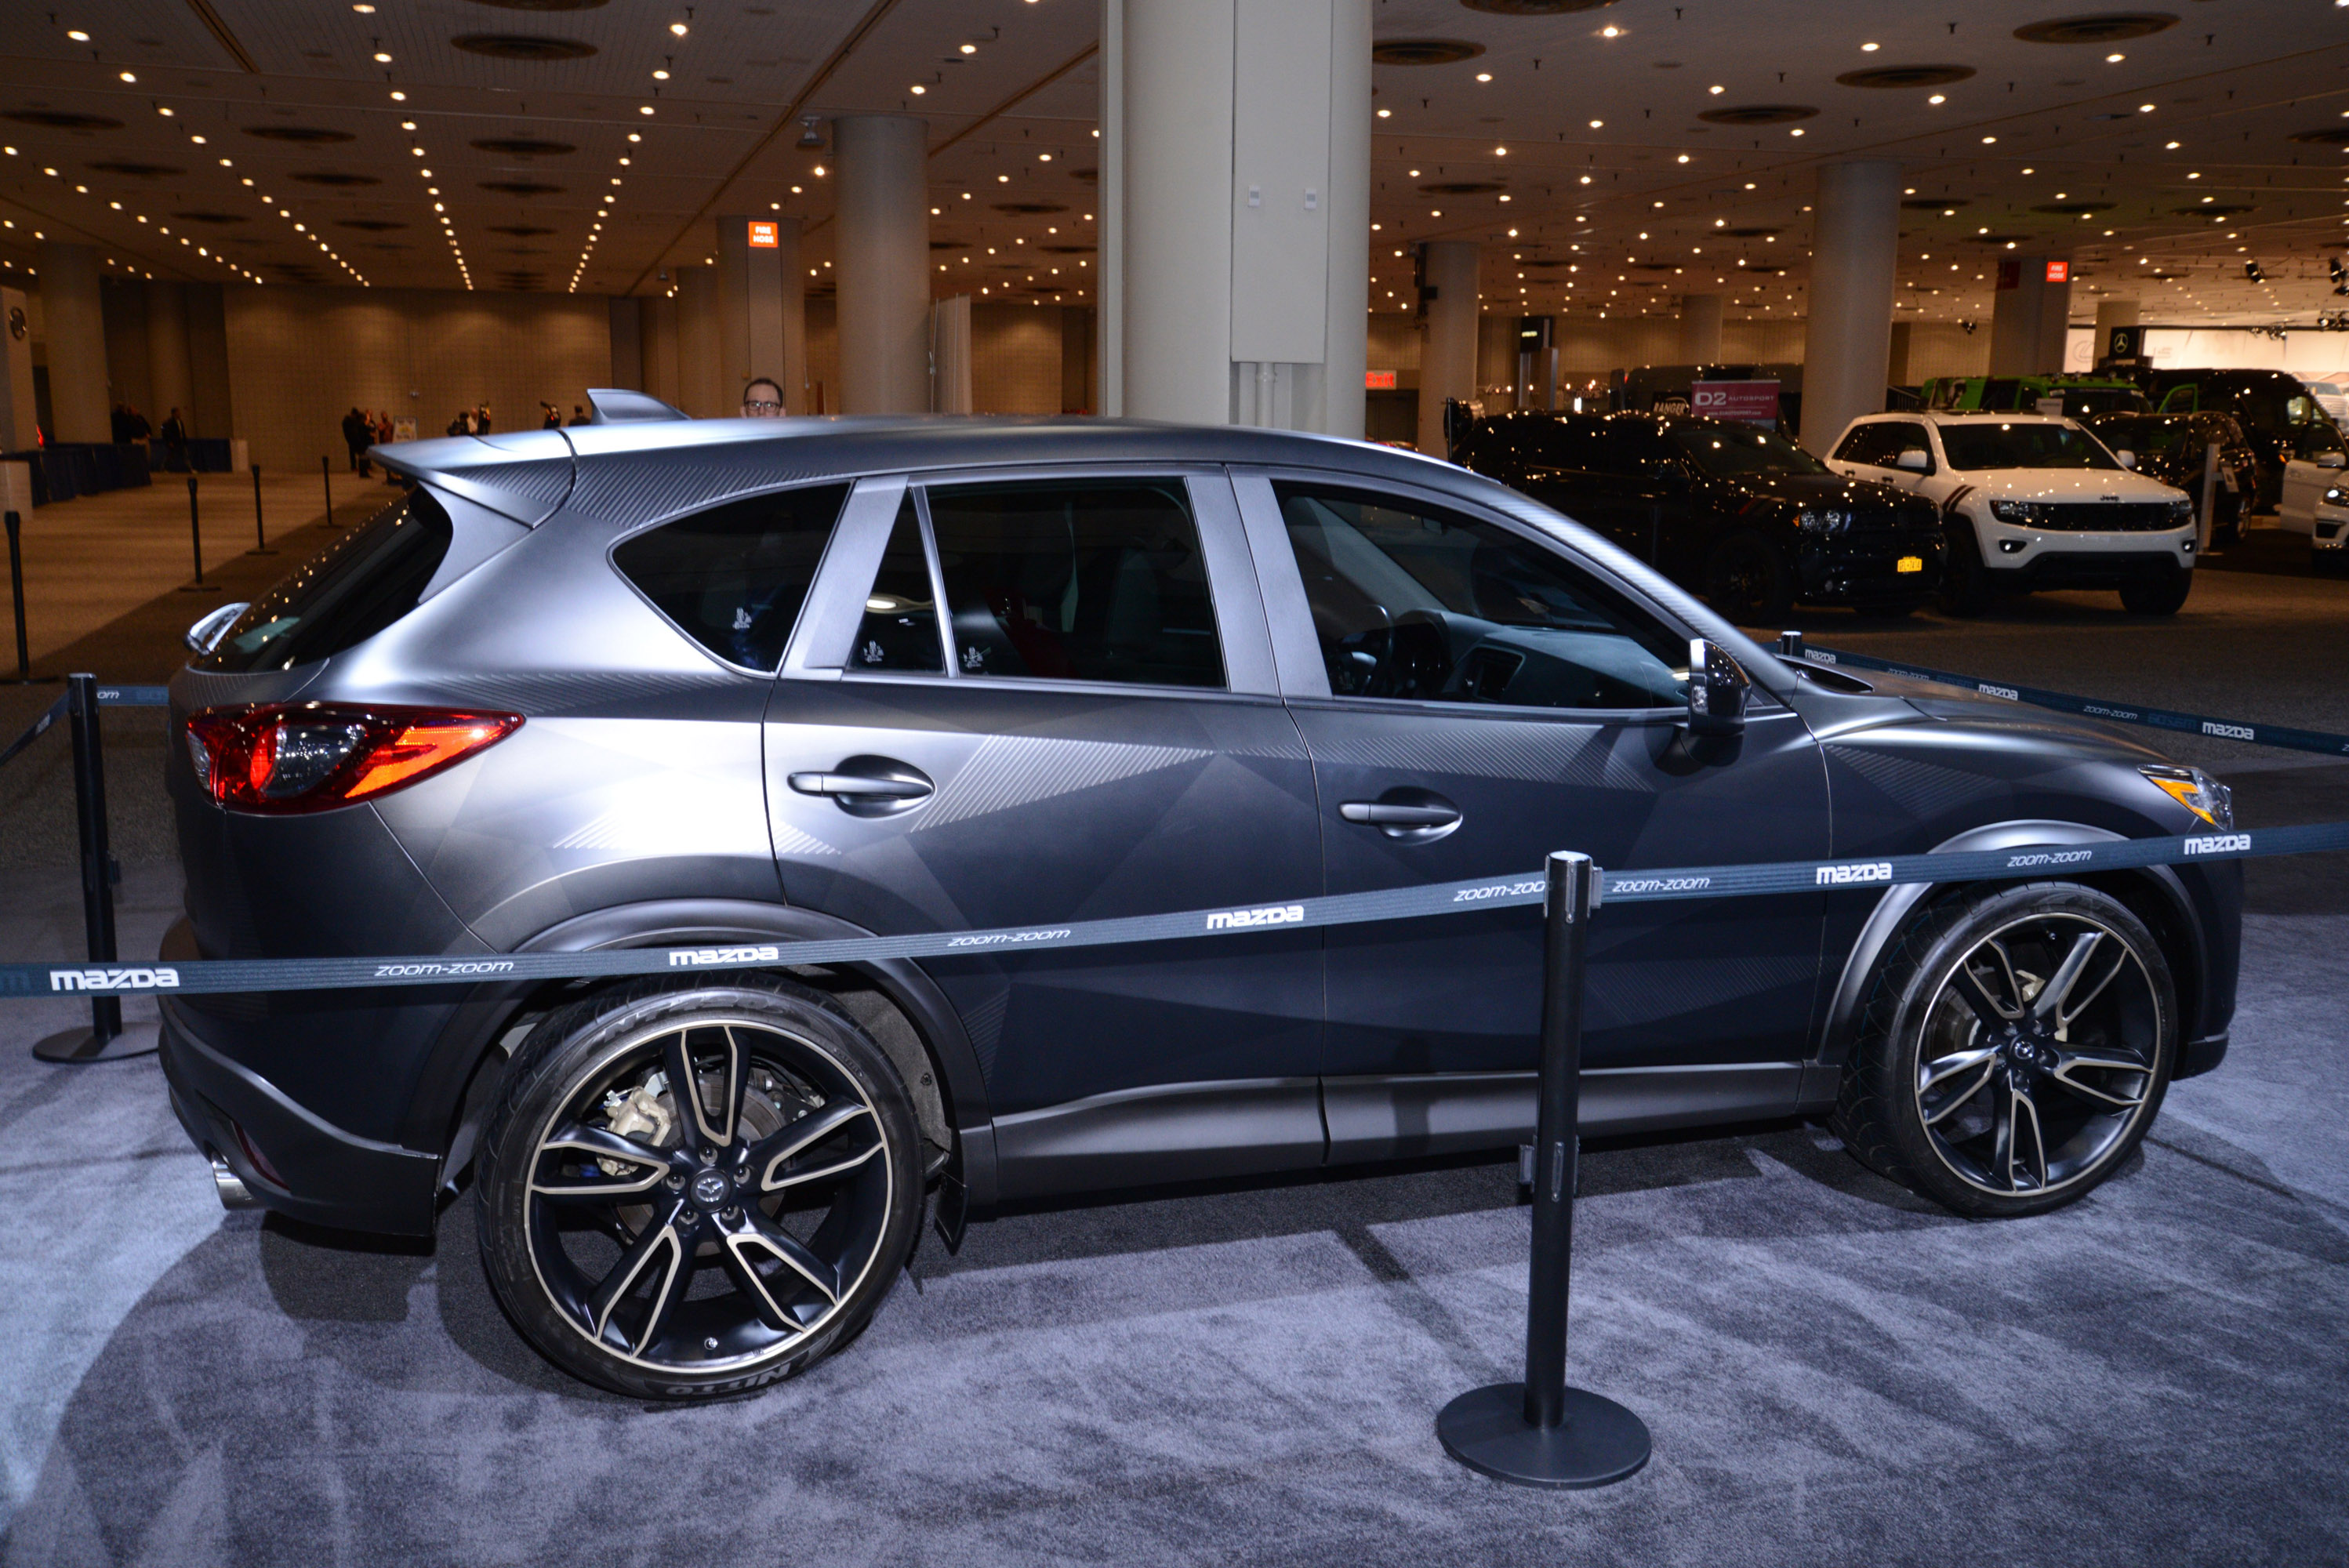 https://www.automobilesreview.com/gallery/mazda-cx-5-urban-new-york-2014/mazda-cx-5-urban-new-york-2014-04.jpg